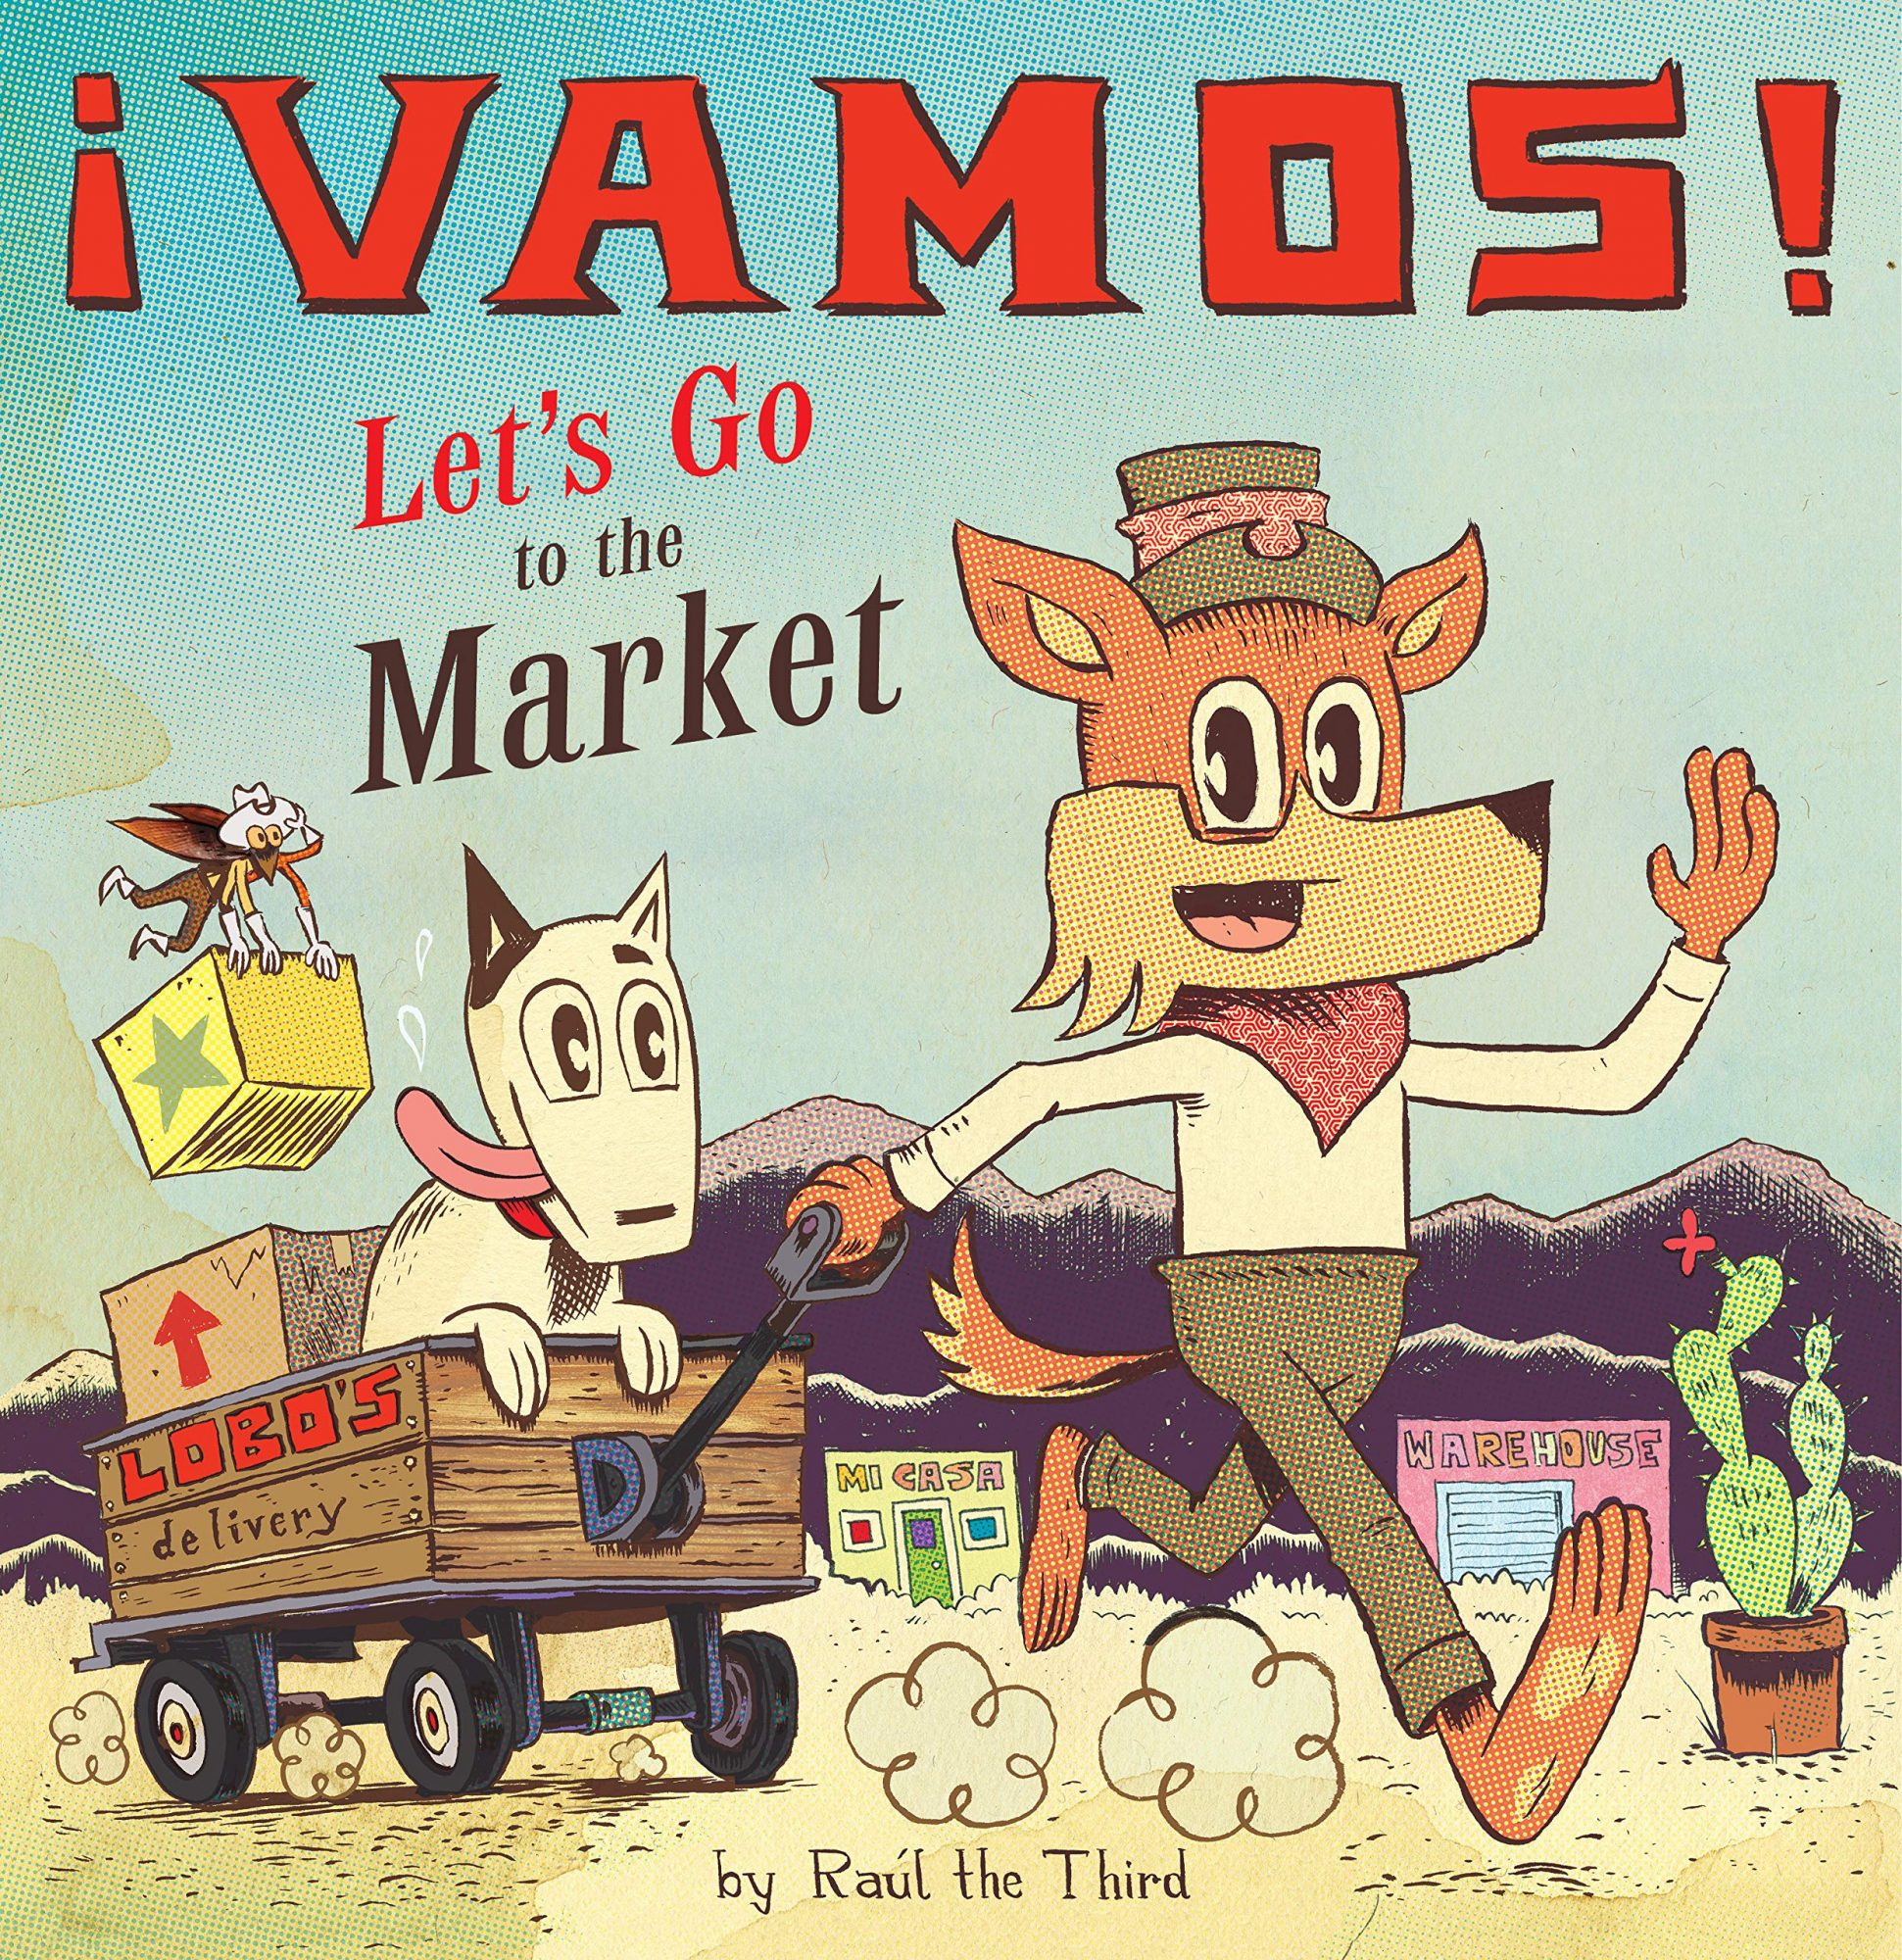 Vamos Let's Go to the Market